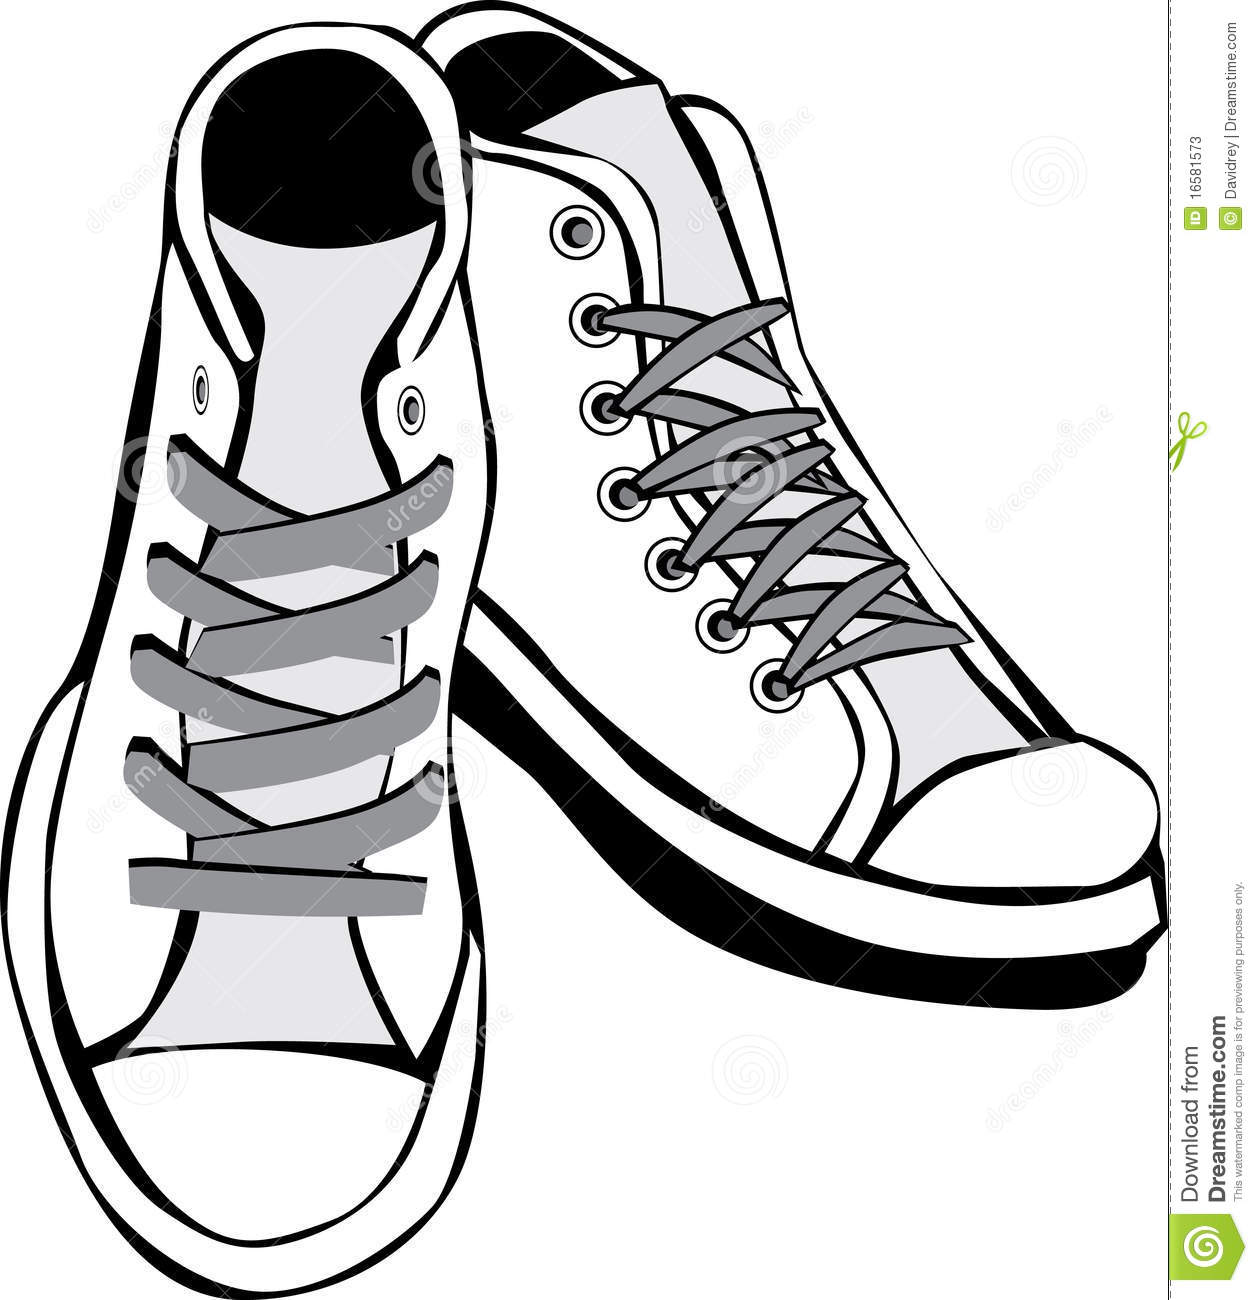 80's clipart converse pair. Sneakers cliparts old blue